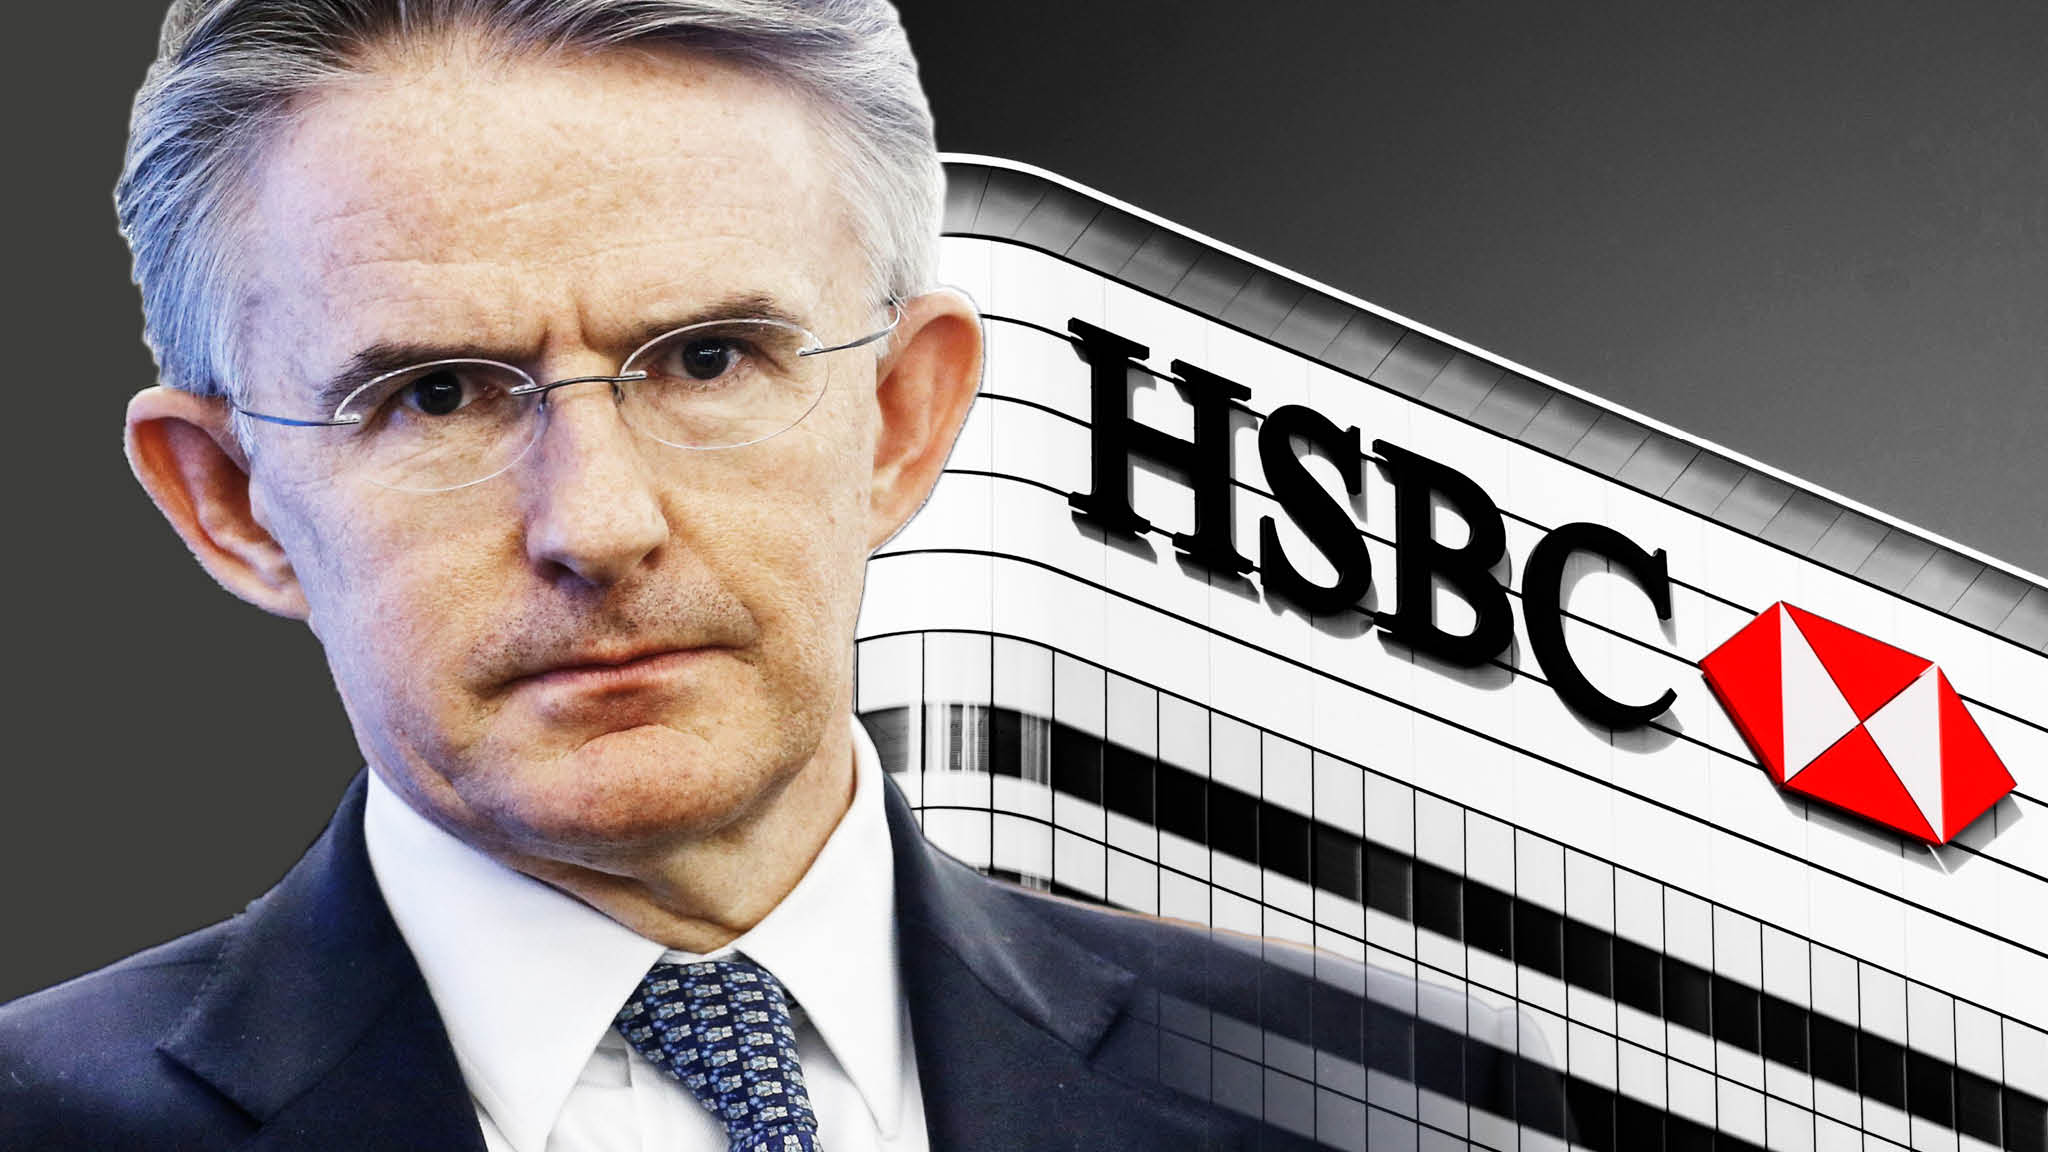 HSBC: the bank in need of a 'superhero' chief executive